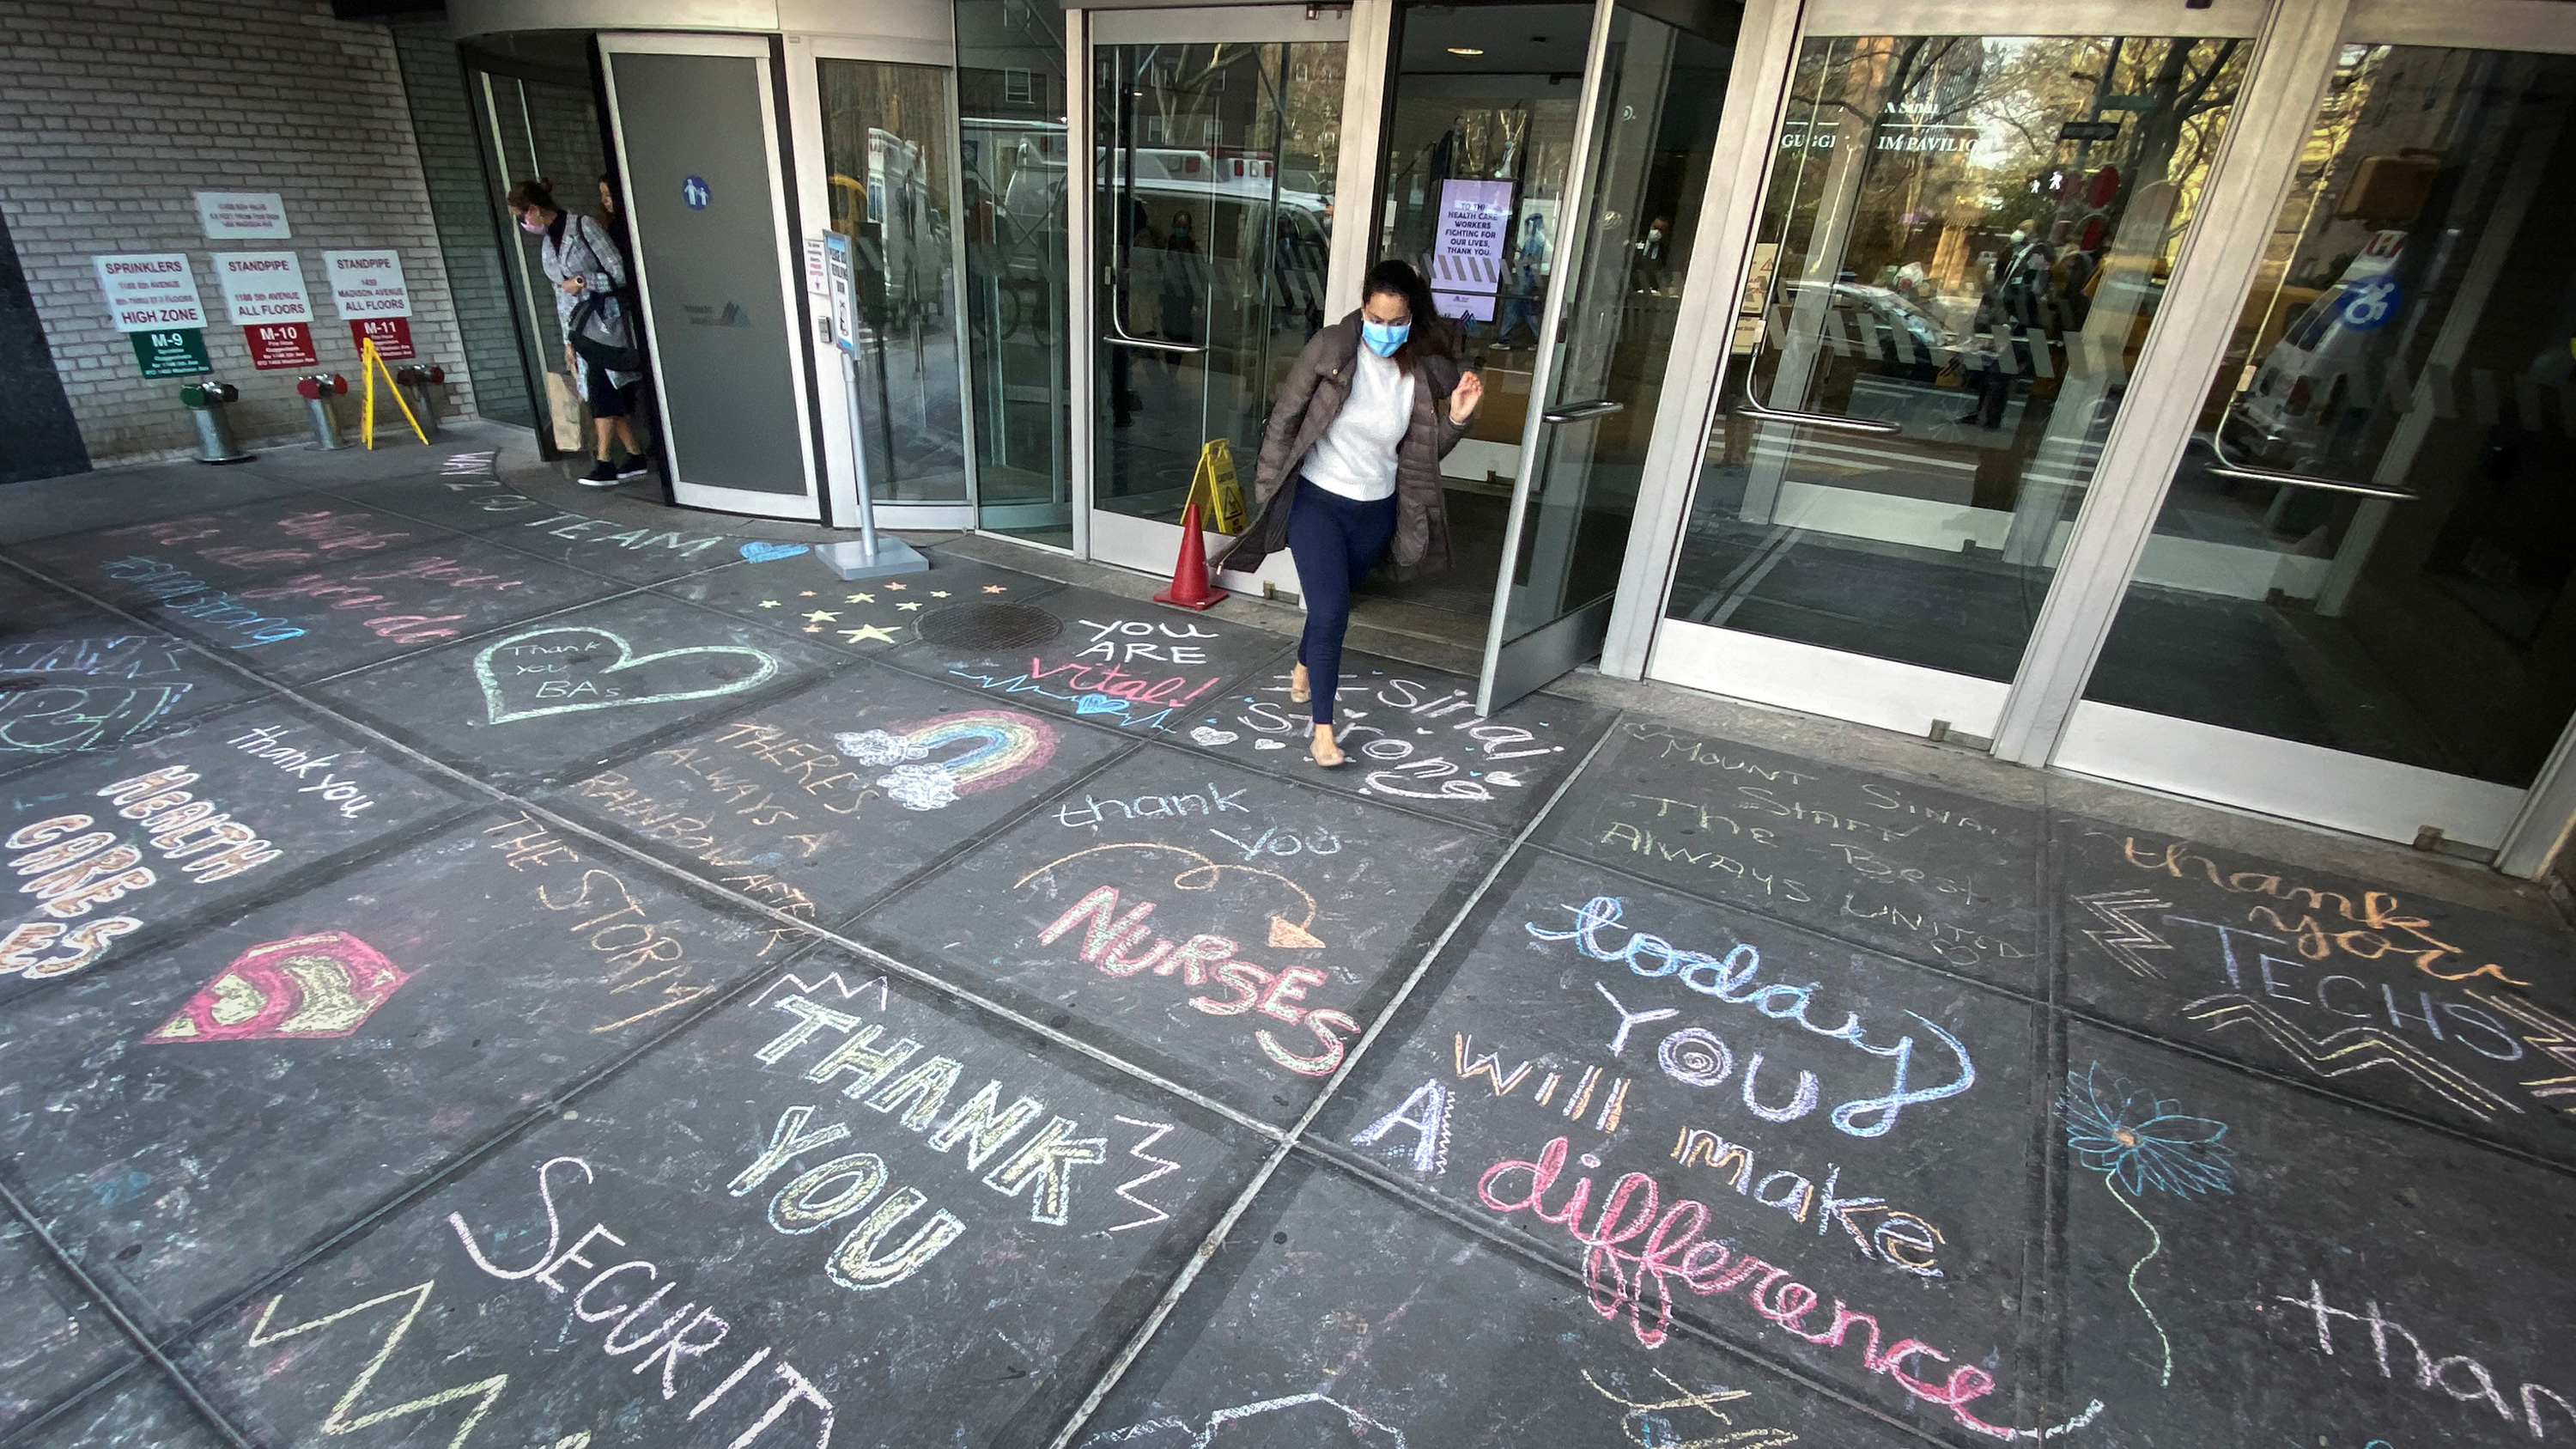 The photo shows an entrance to the hospital with a large number of colorful messages of thanks written in chalk on the sidewalk outside.